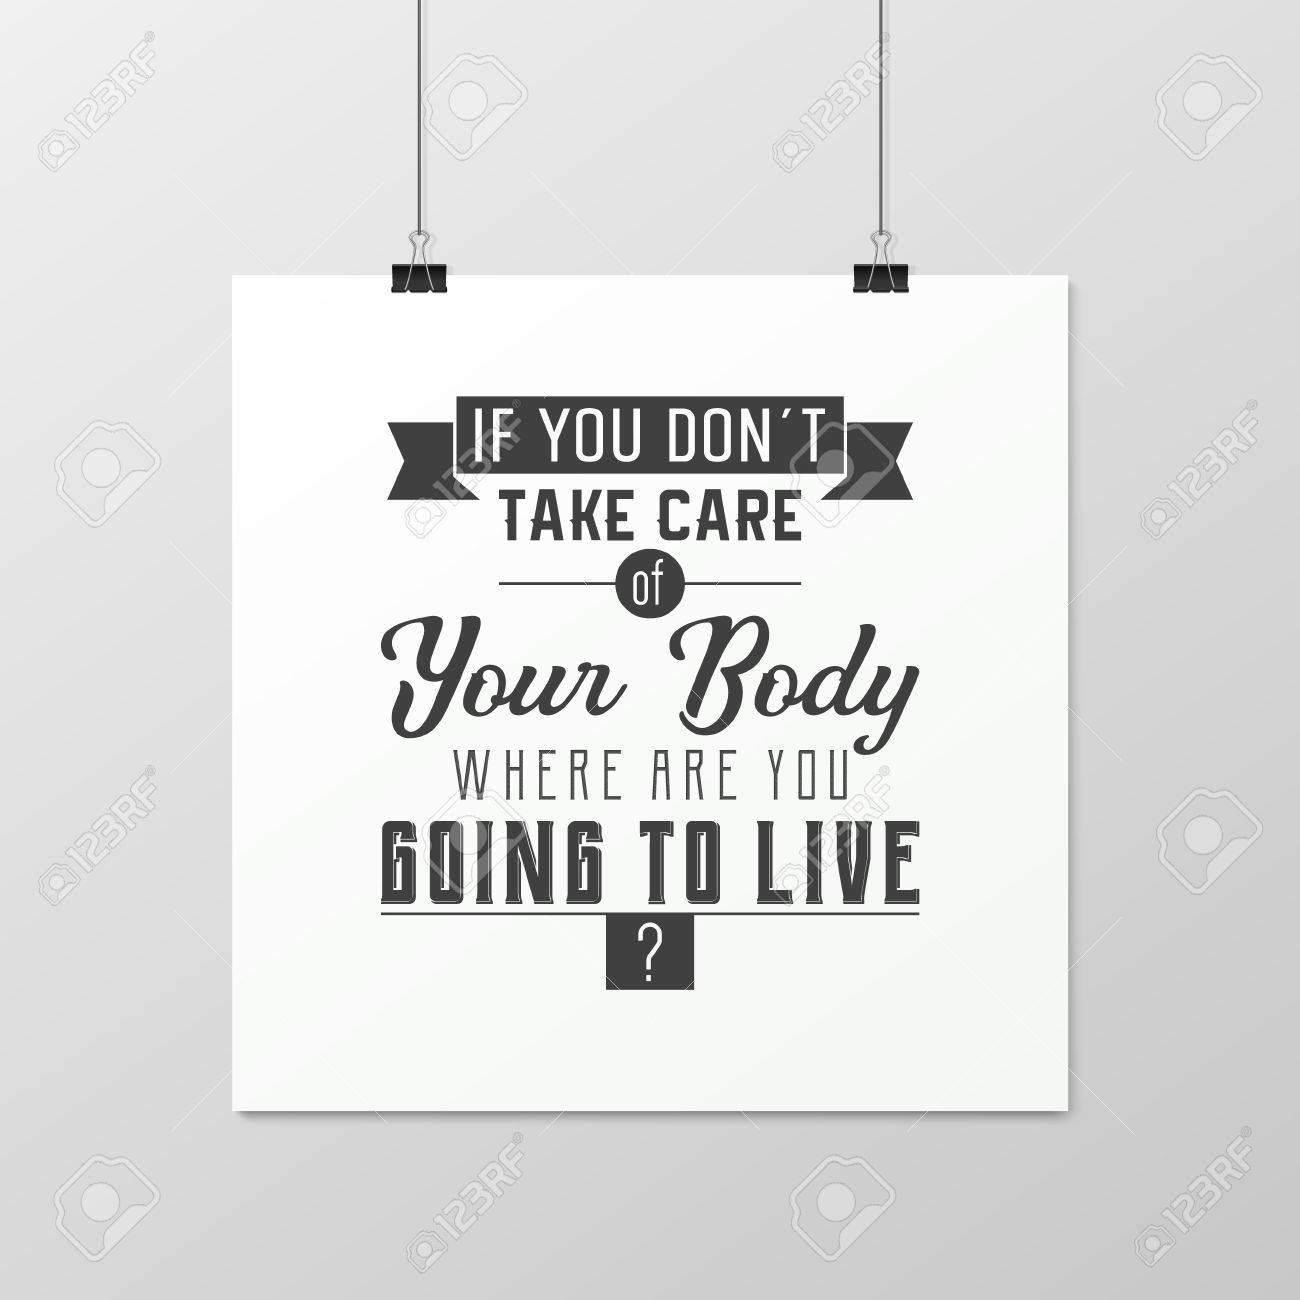 If You Do Not Take Care Of Your Body Where Are You Going To Live